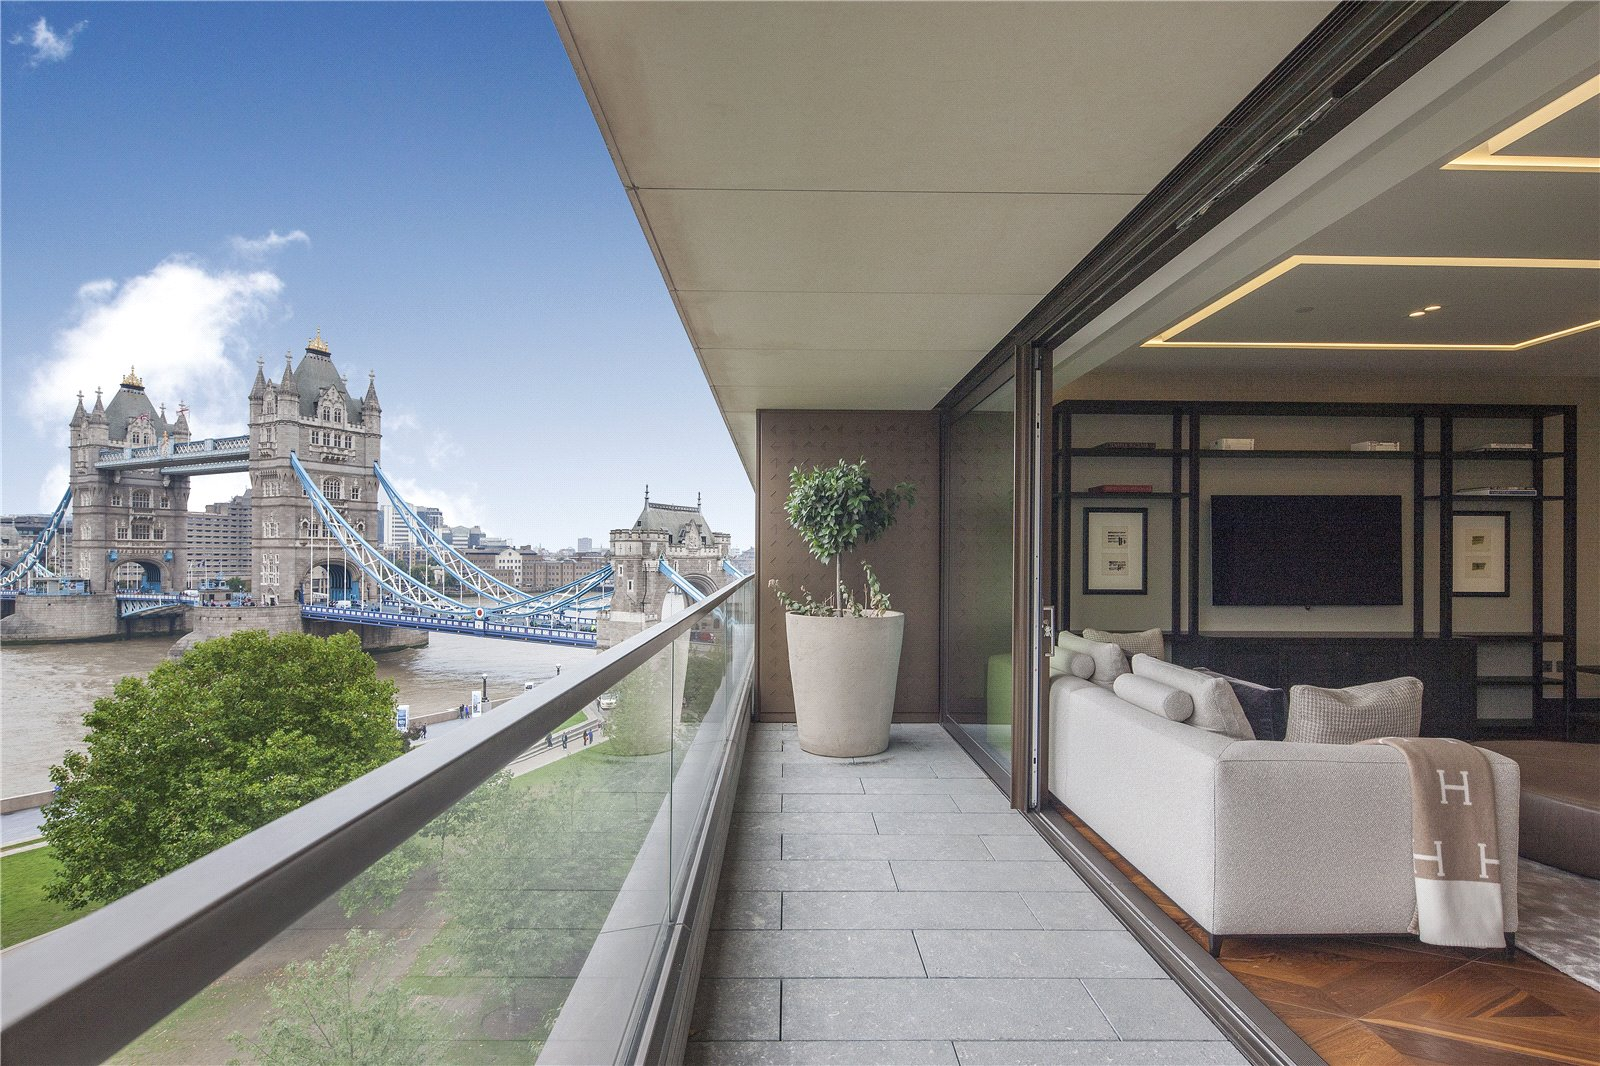 Apartment for Sale at Blenheim House, Tower Bridge, Crown Square, London, SE1 Blenheim House, Tower Bridge, Crown Square, London, SE1